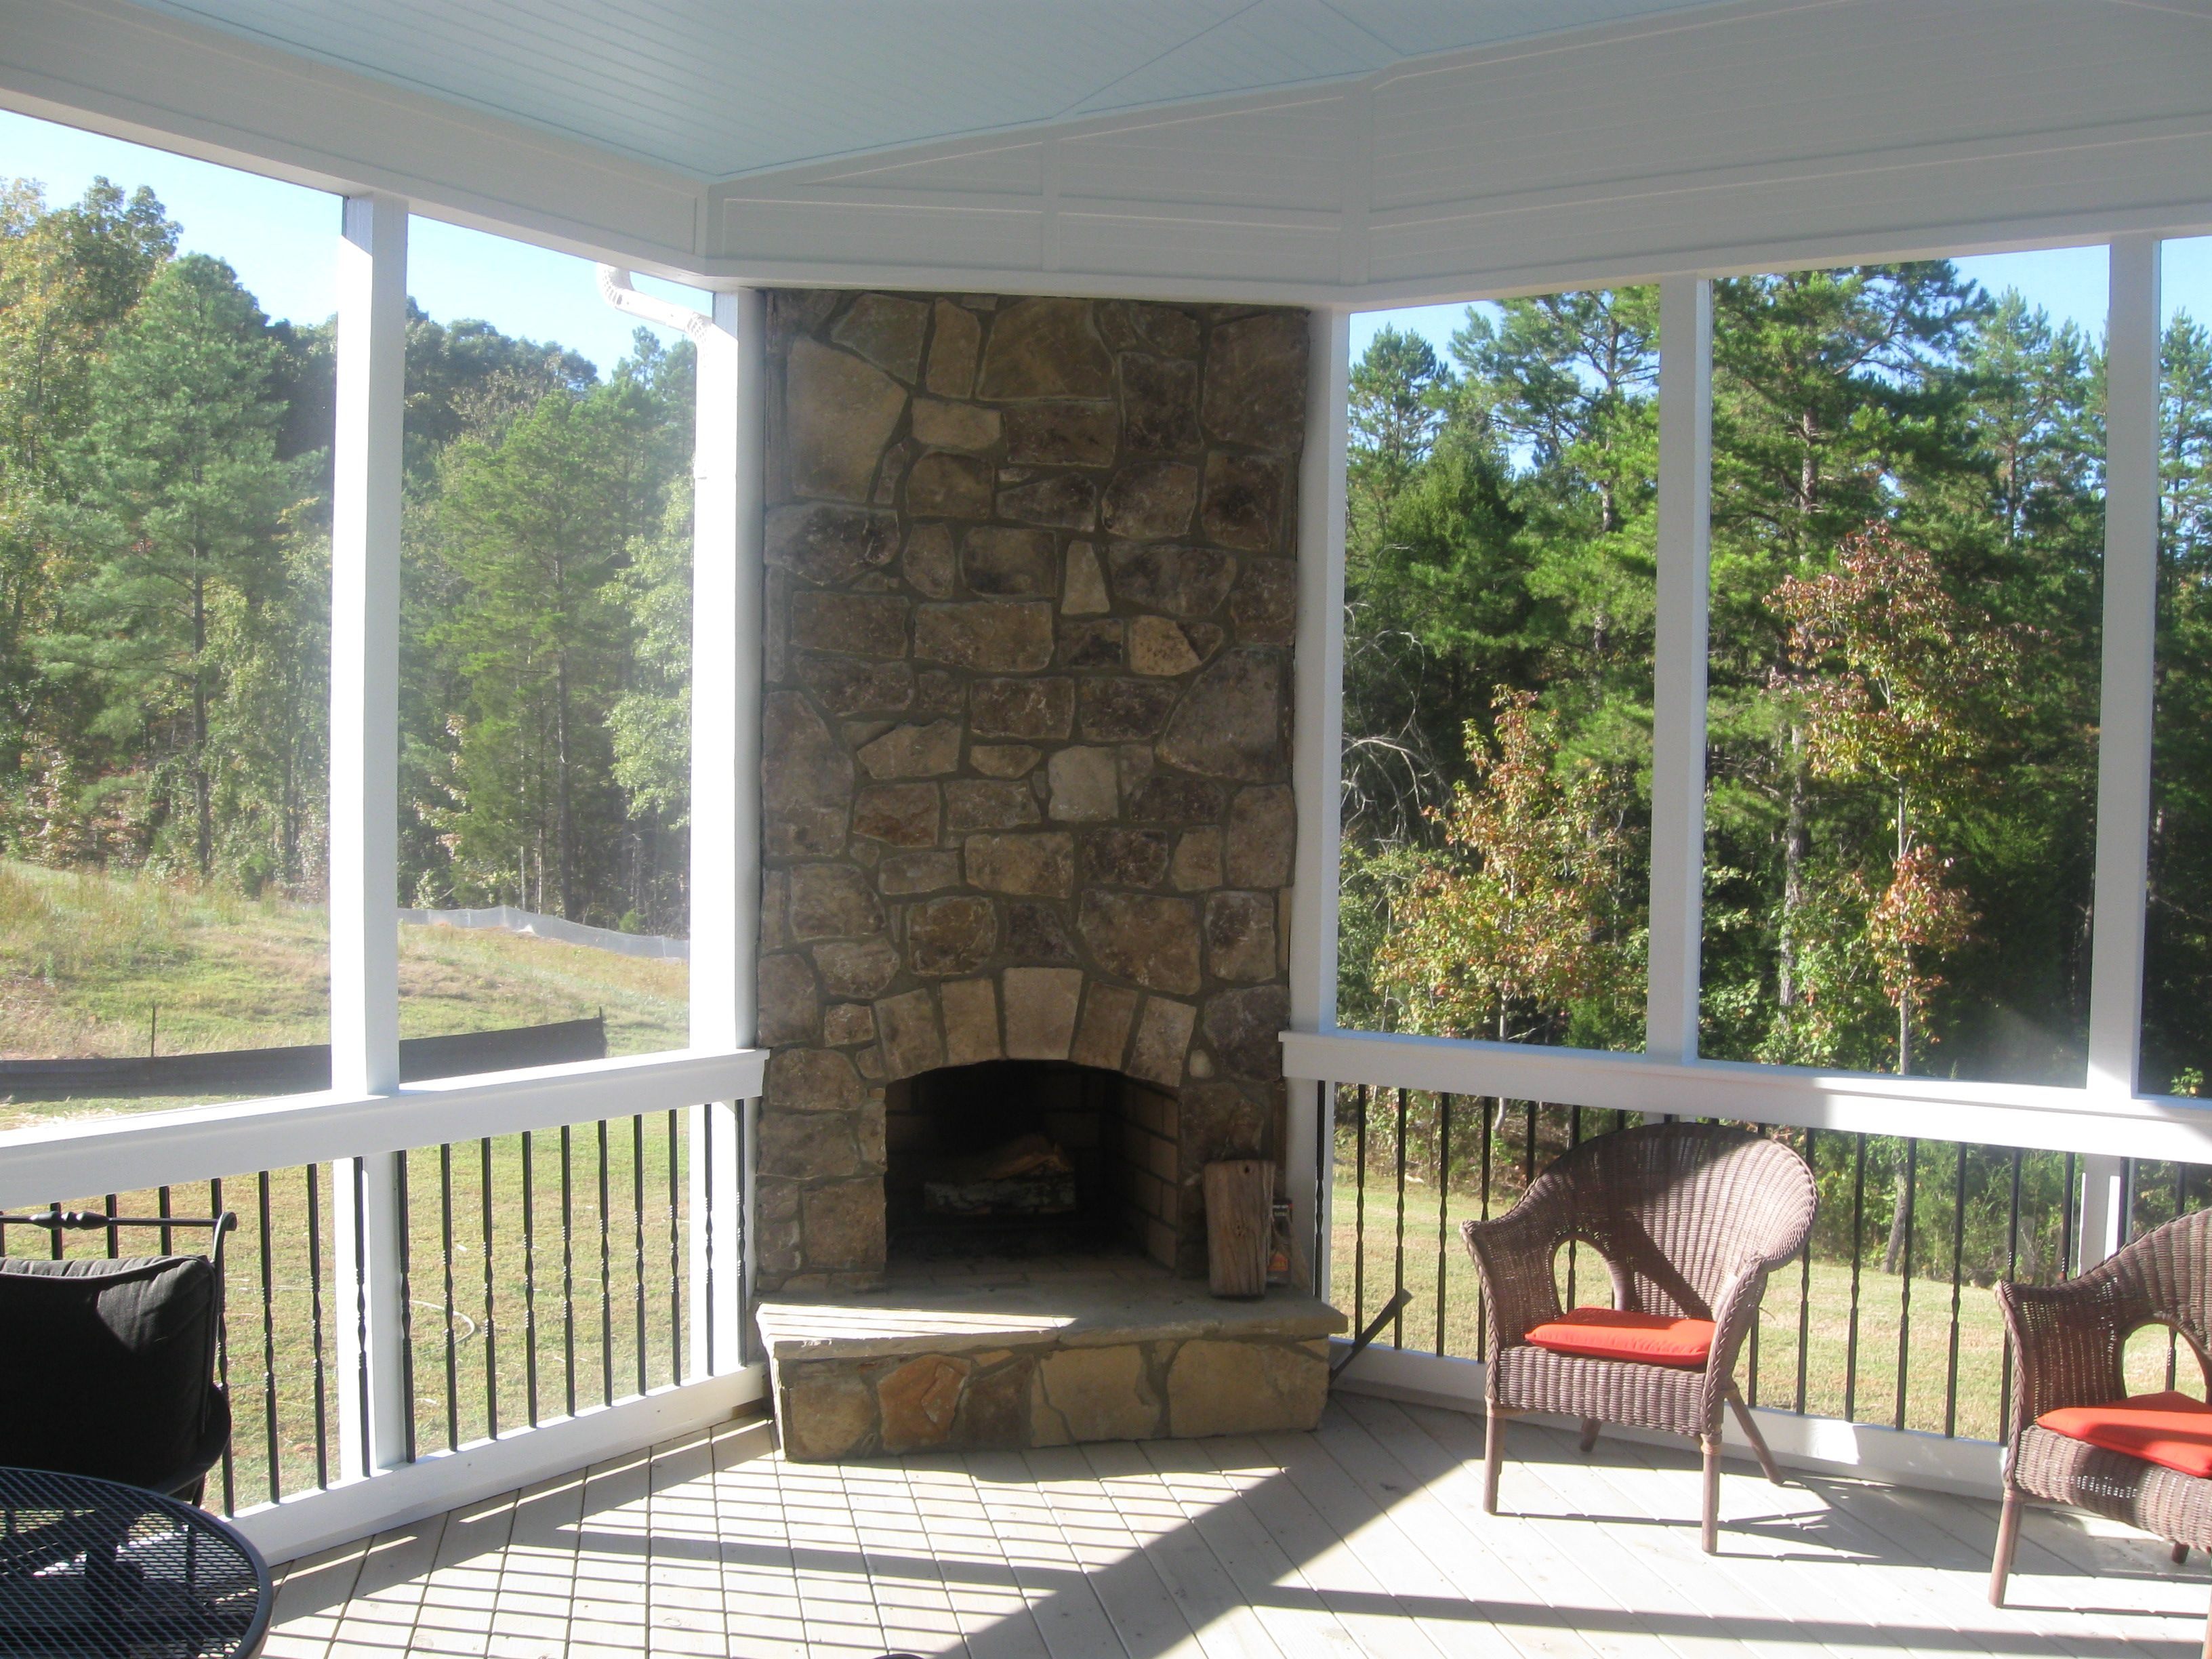 Outdoor Fireplace Integrated Into Your Screen Porch/